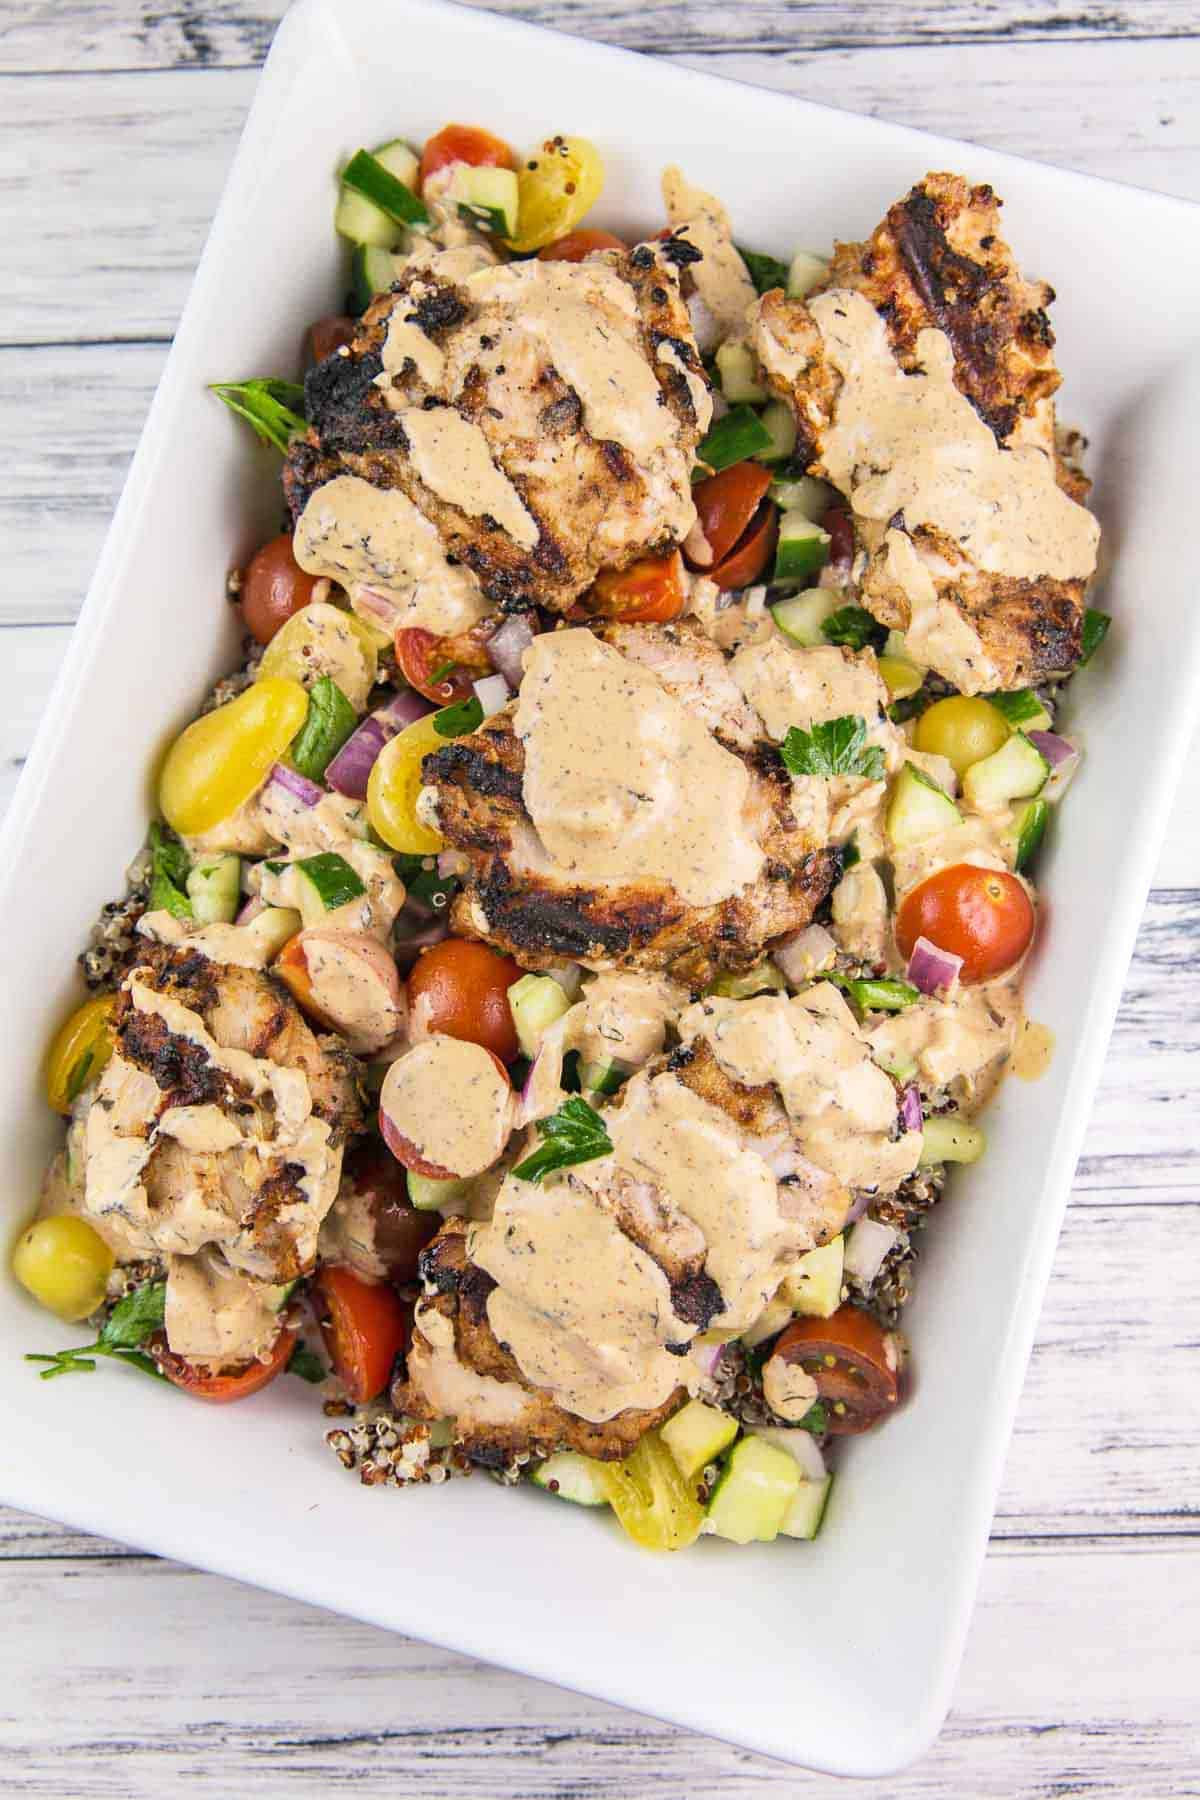 white serving dish filled with tomato cucumber salad, grilled chicken, and a creamy tahini sauce